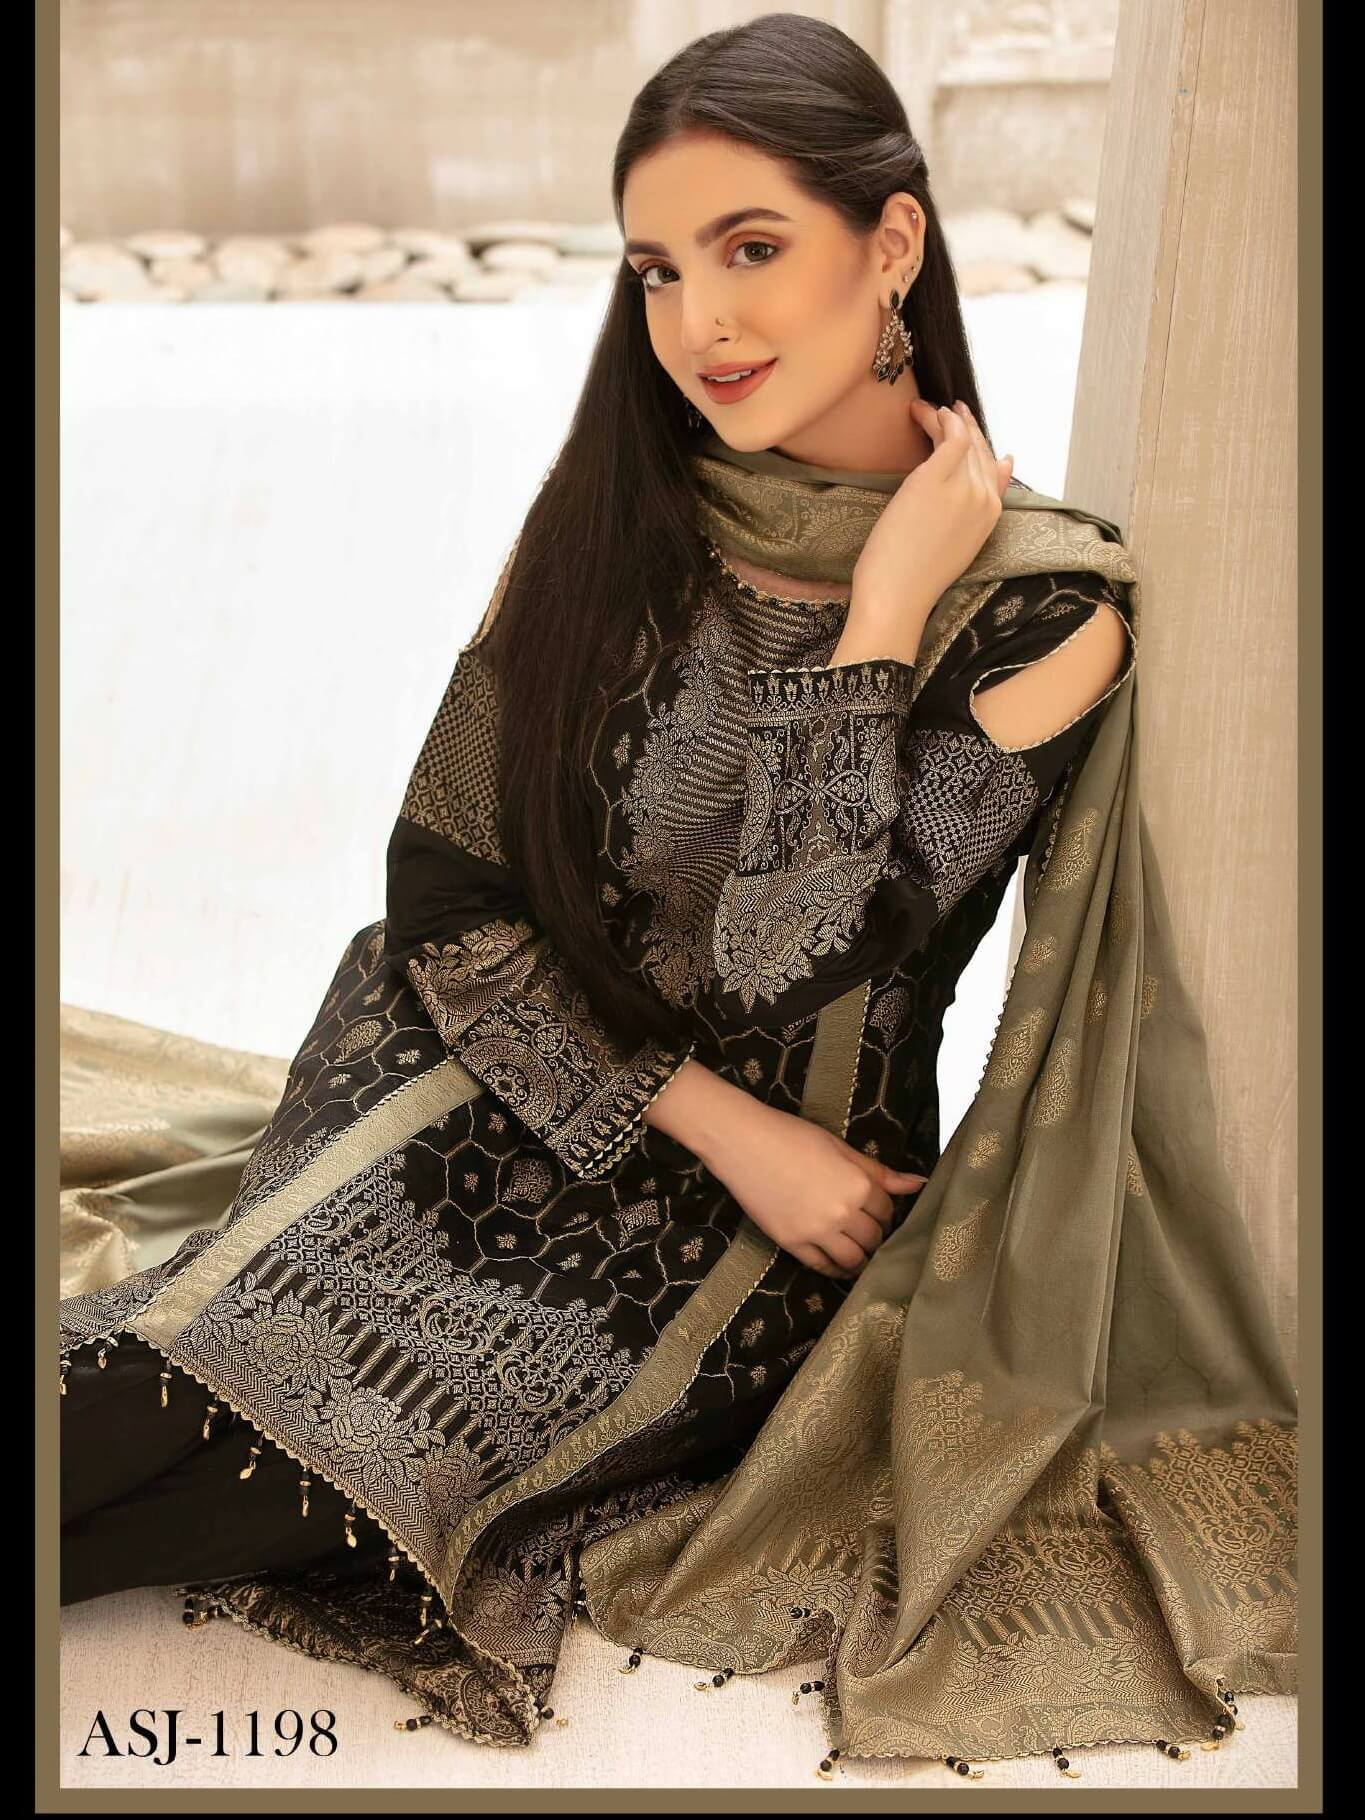 Tawakkal Fabrics Jacquard Banarsi Lawn 3PC Suit Eid Collection D-1198 - FaisalFabrics.pk